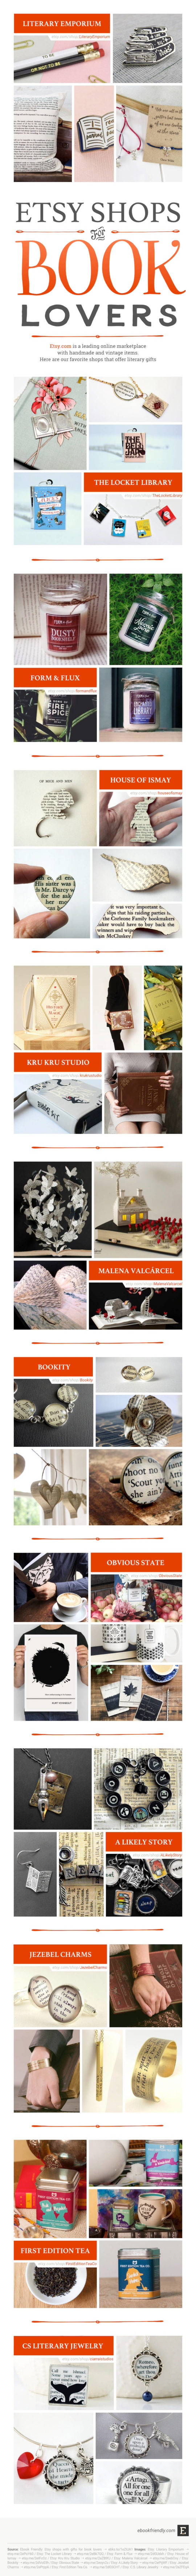 Etsy shops for book lovers #infographic